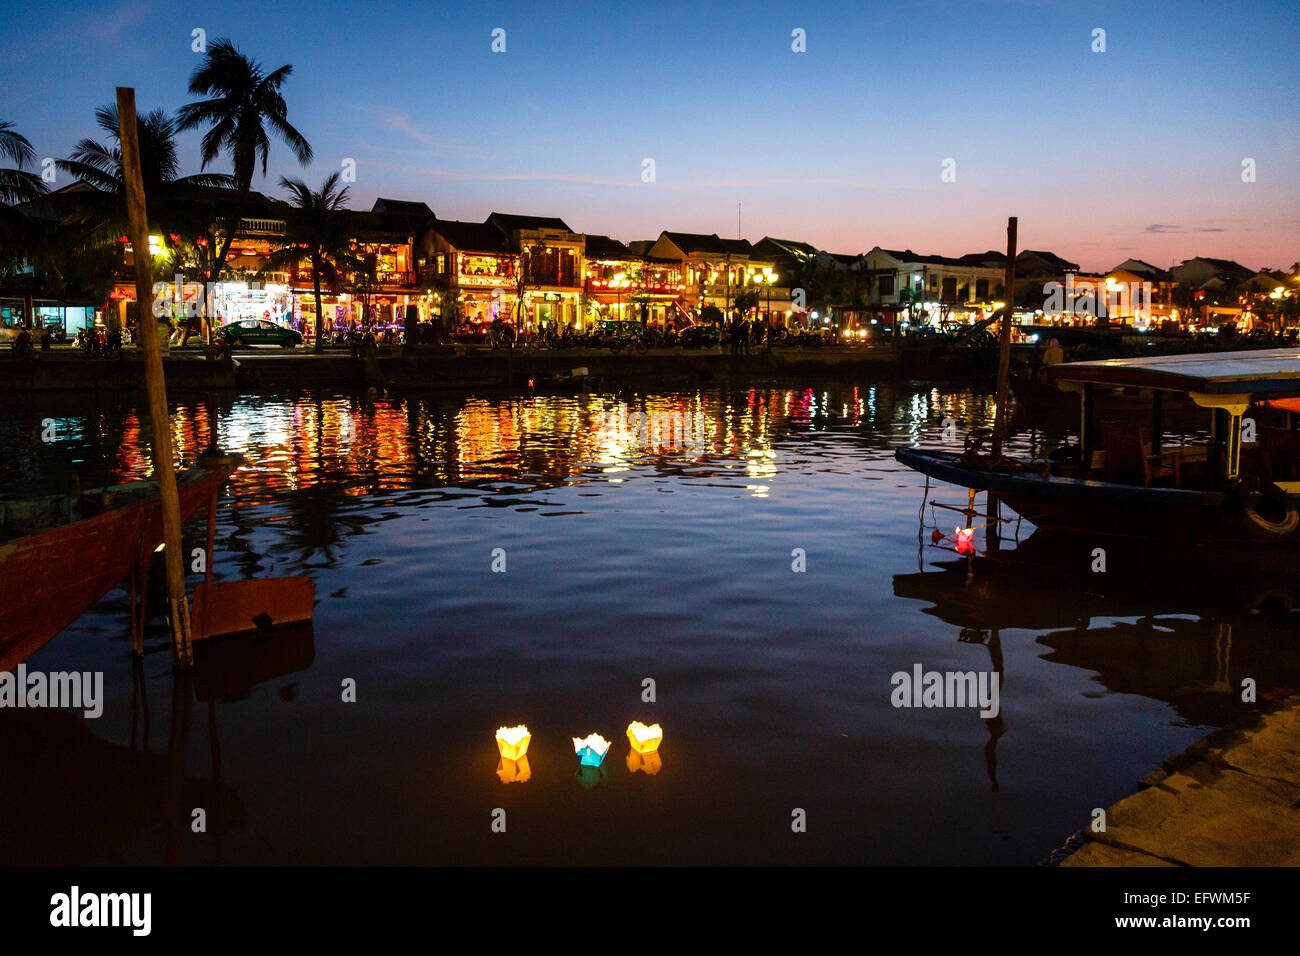 Floating candles, Hoi An, Vietnam. - Stock Image